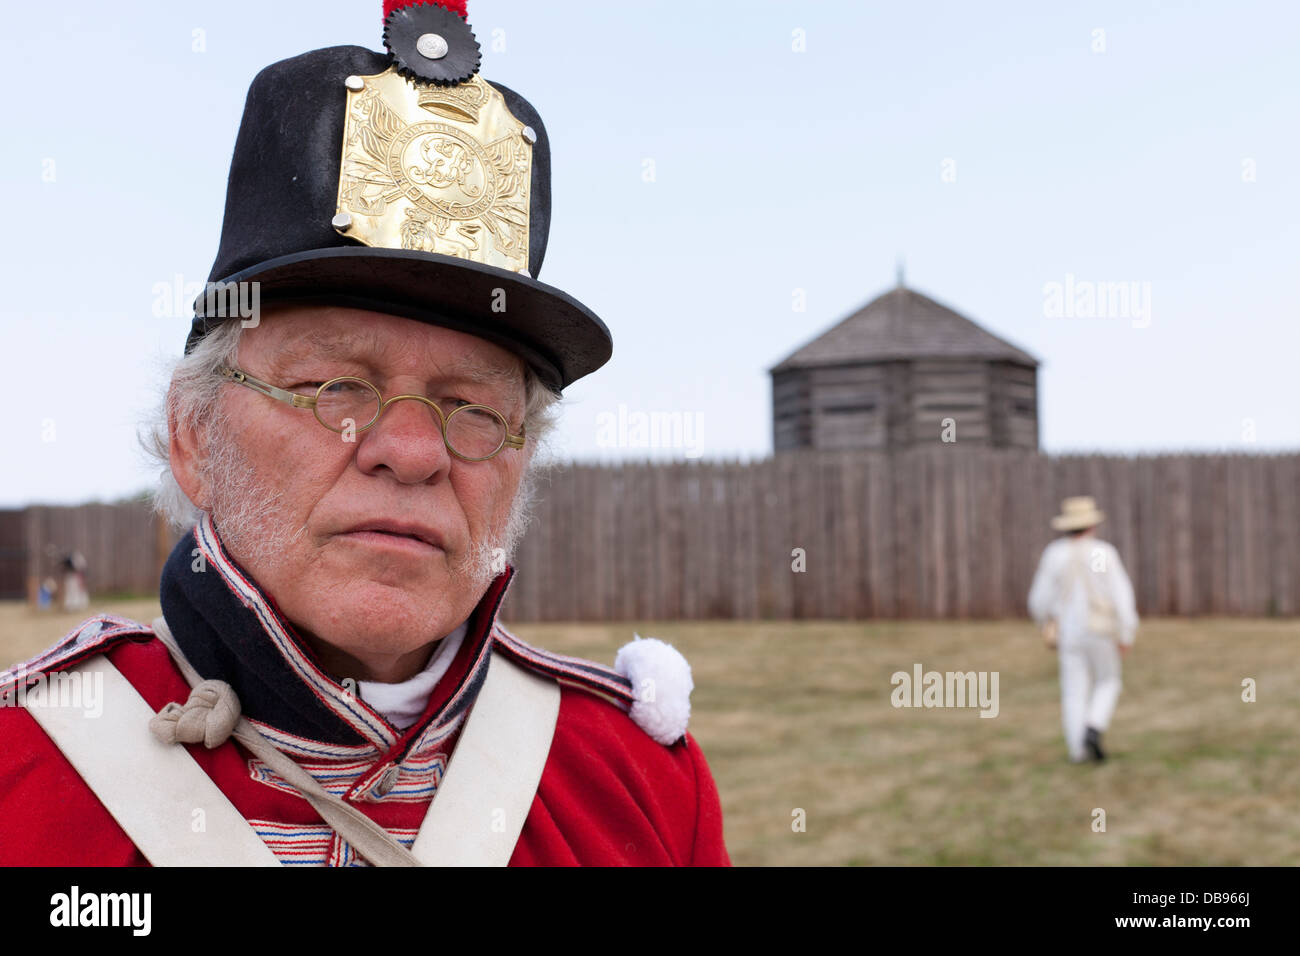 Canada,Ontario,Niagara-on-the-Lake, Fort George National Historic Park, 1812 re-enactment - Stock Image